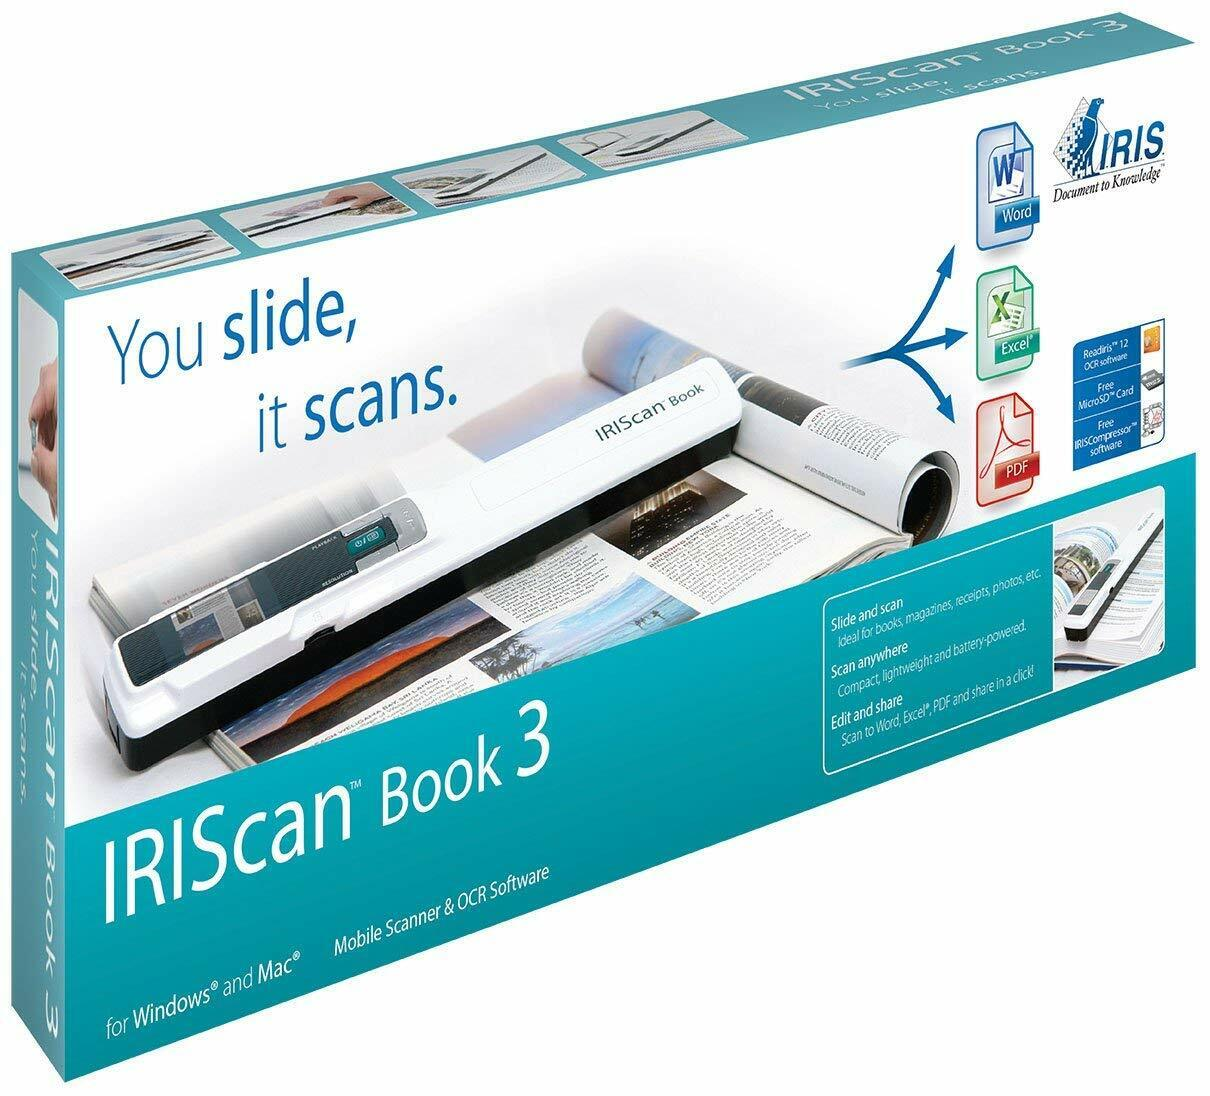 IRIScan Book 3 Wireless Portable 900 dpi Color Scanner